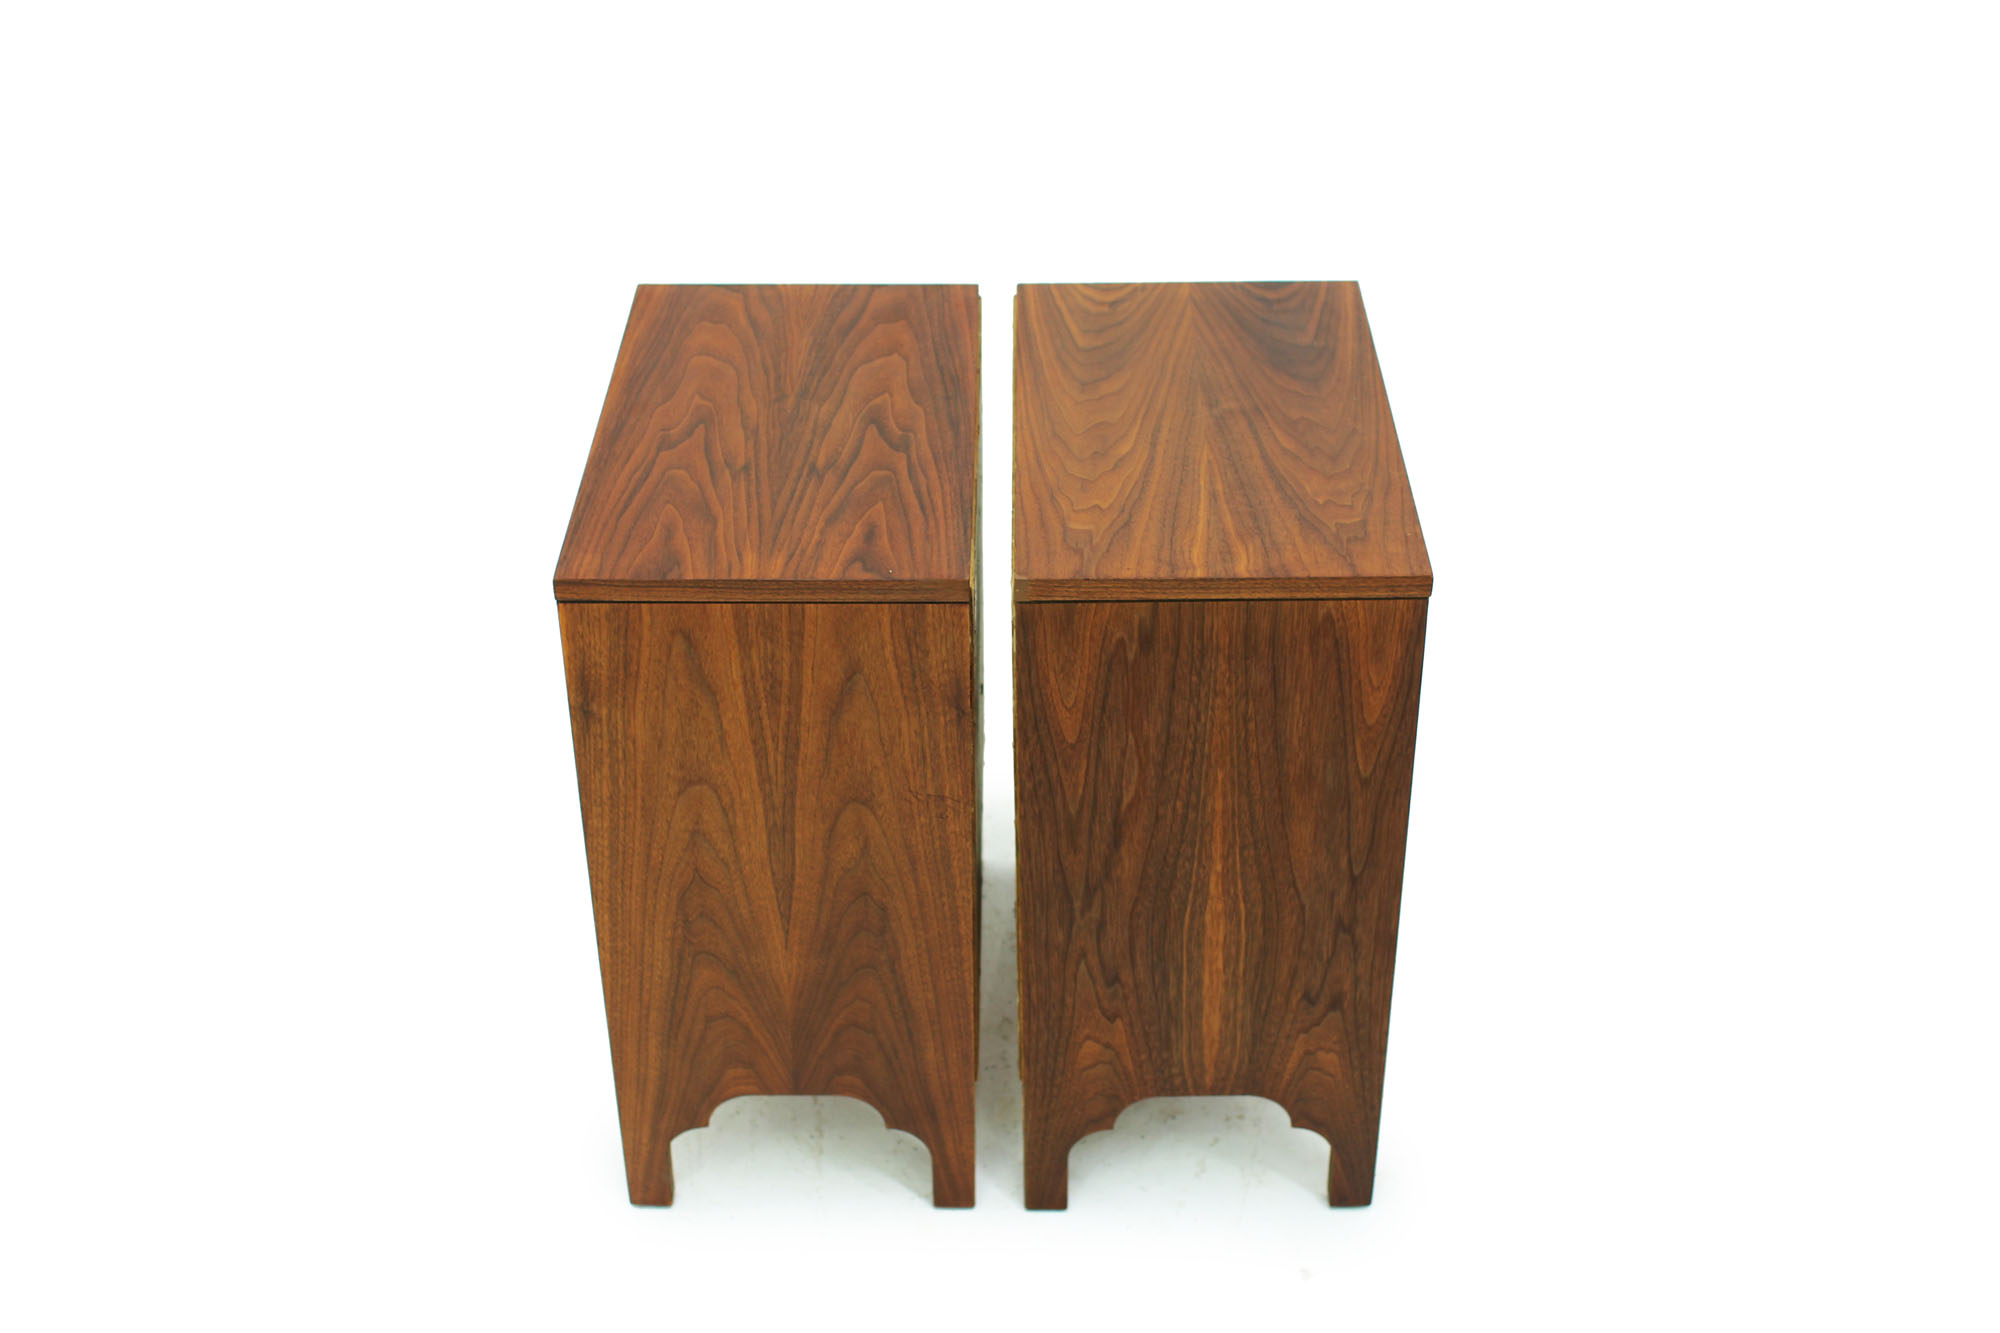 Pair of Walnut Bedside Night Stands Mid century modern design (1).jpg